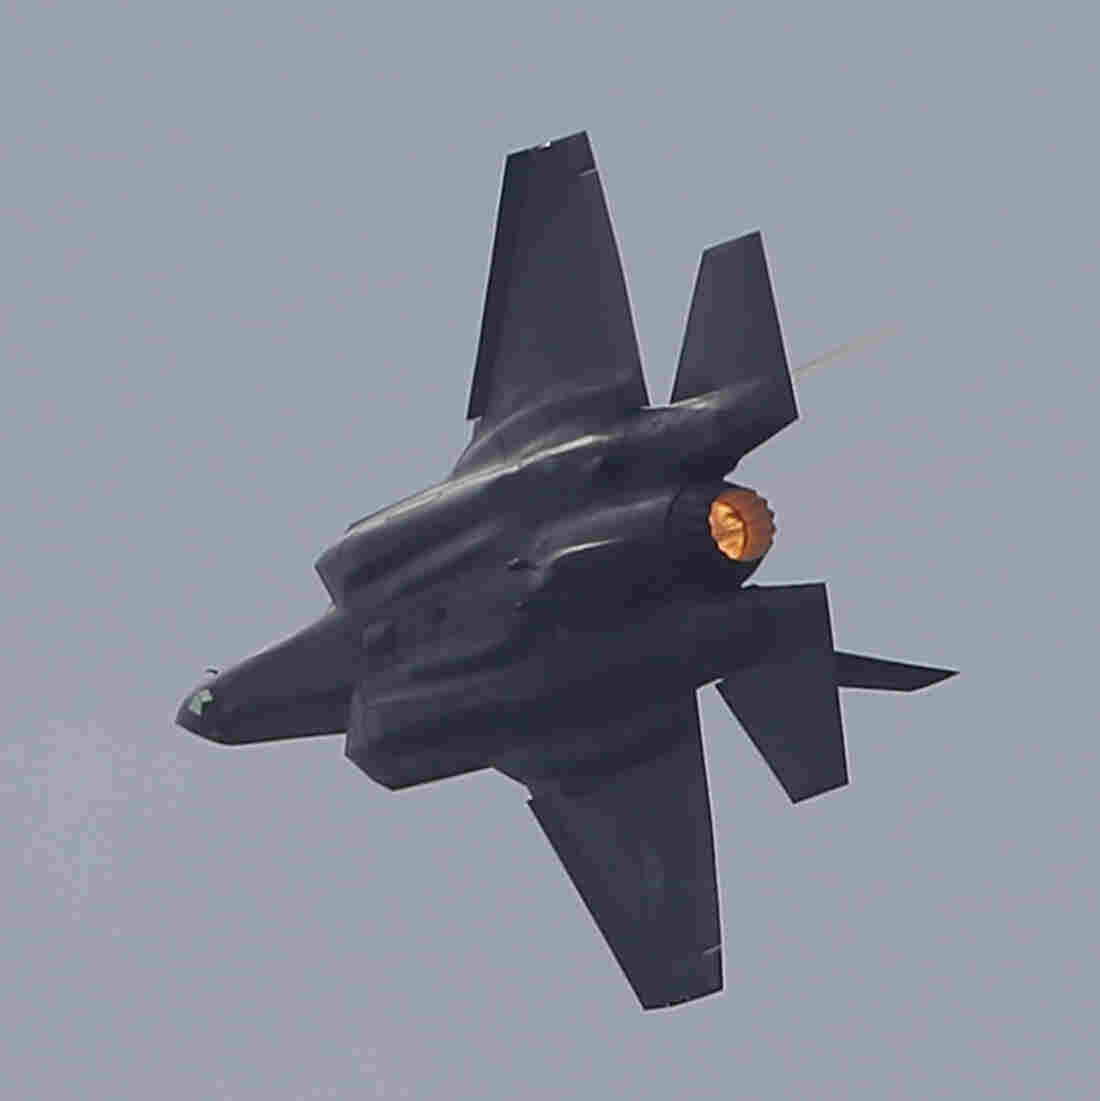 Israel is world's first country to attack with F35s